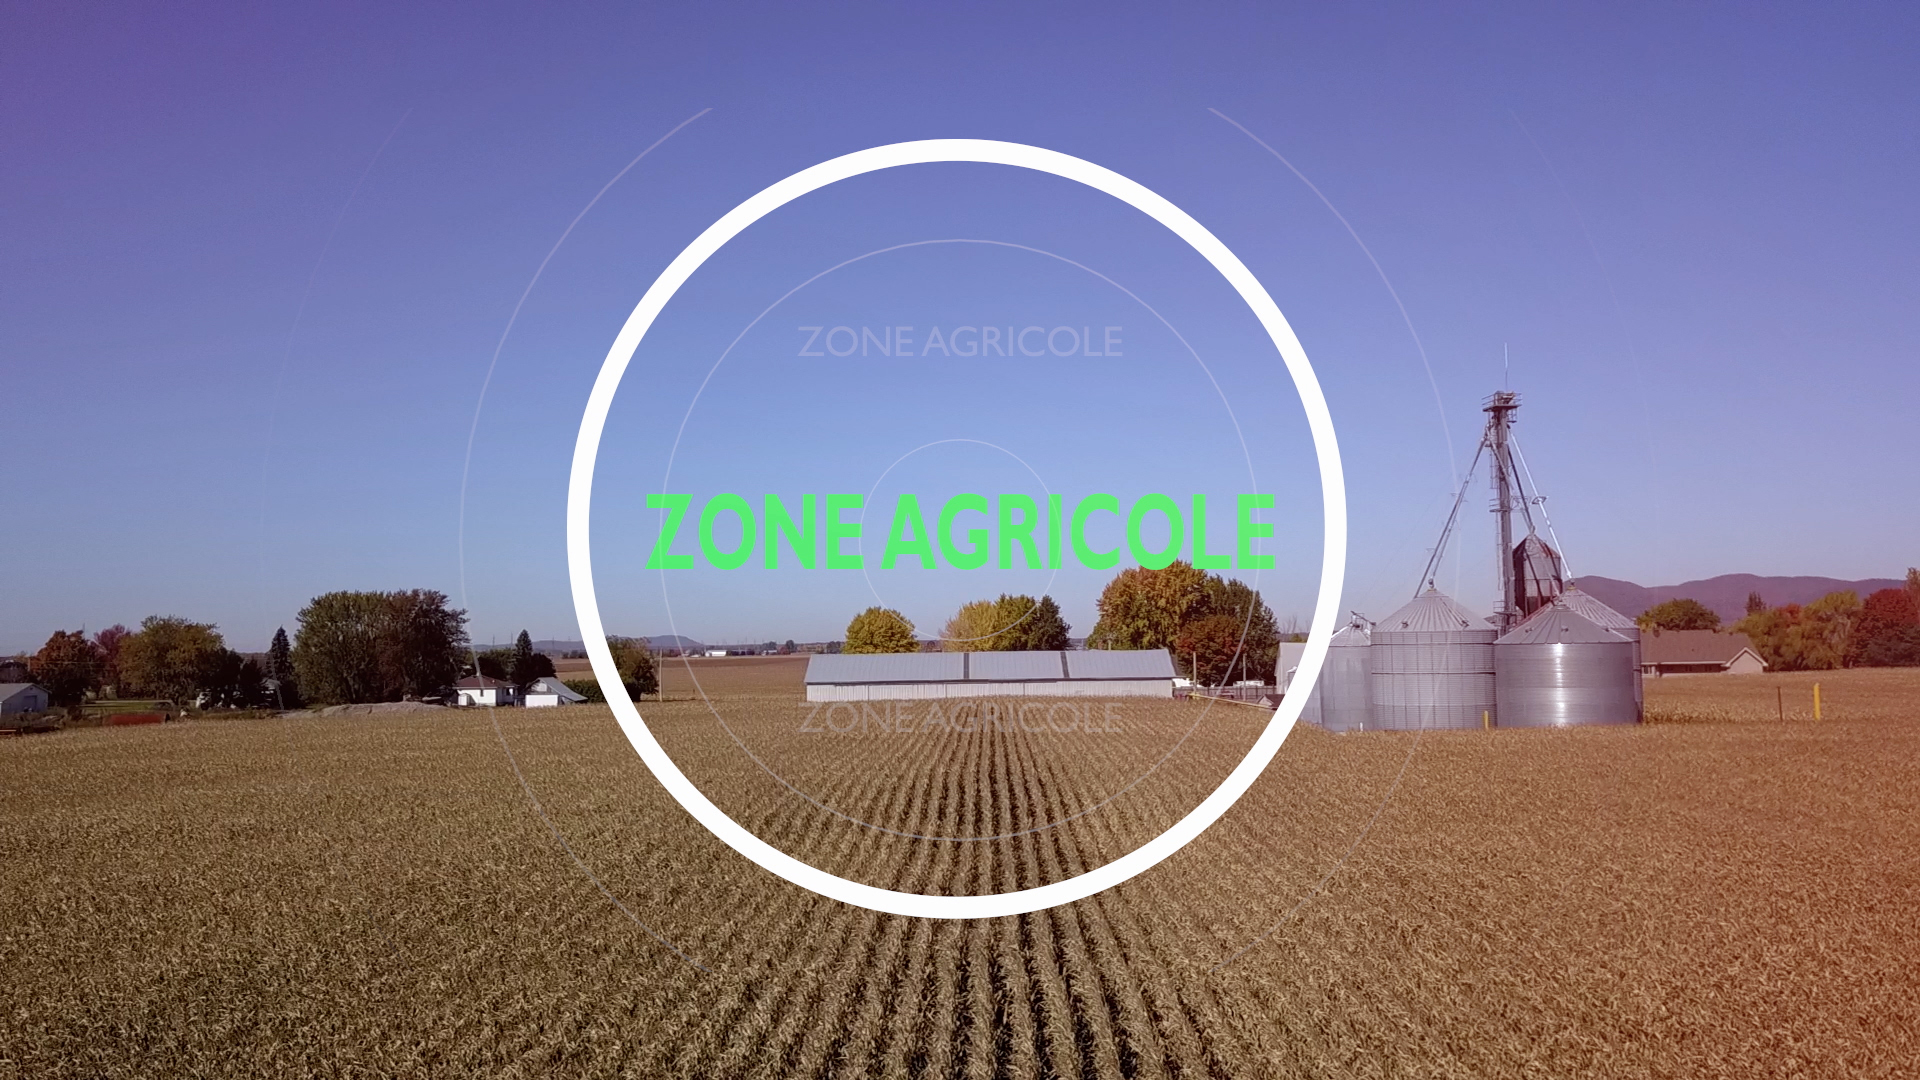 Zone agricole